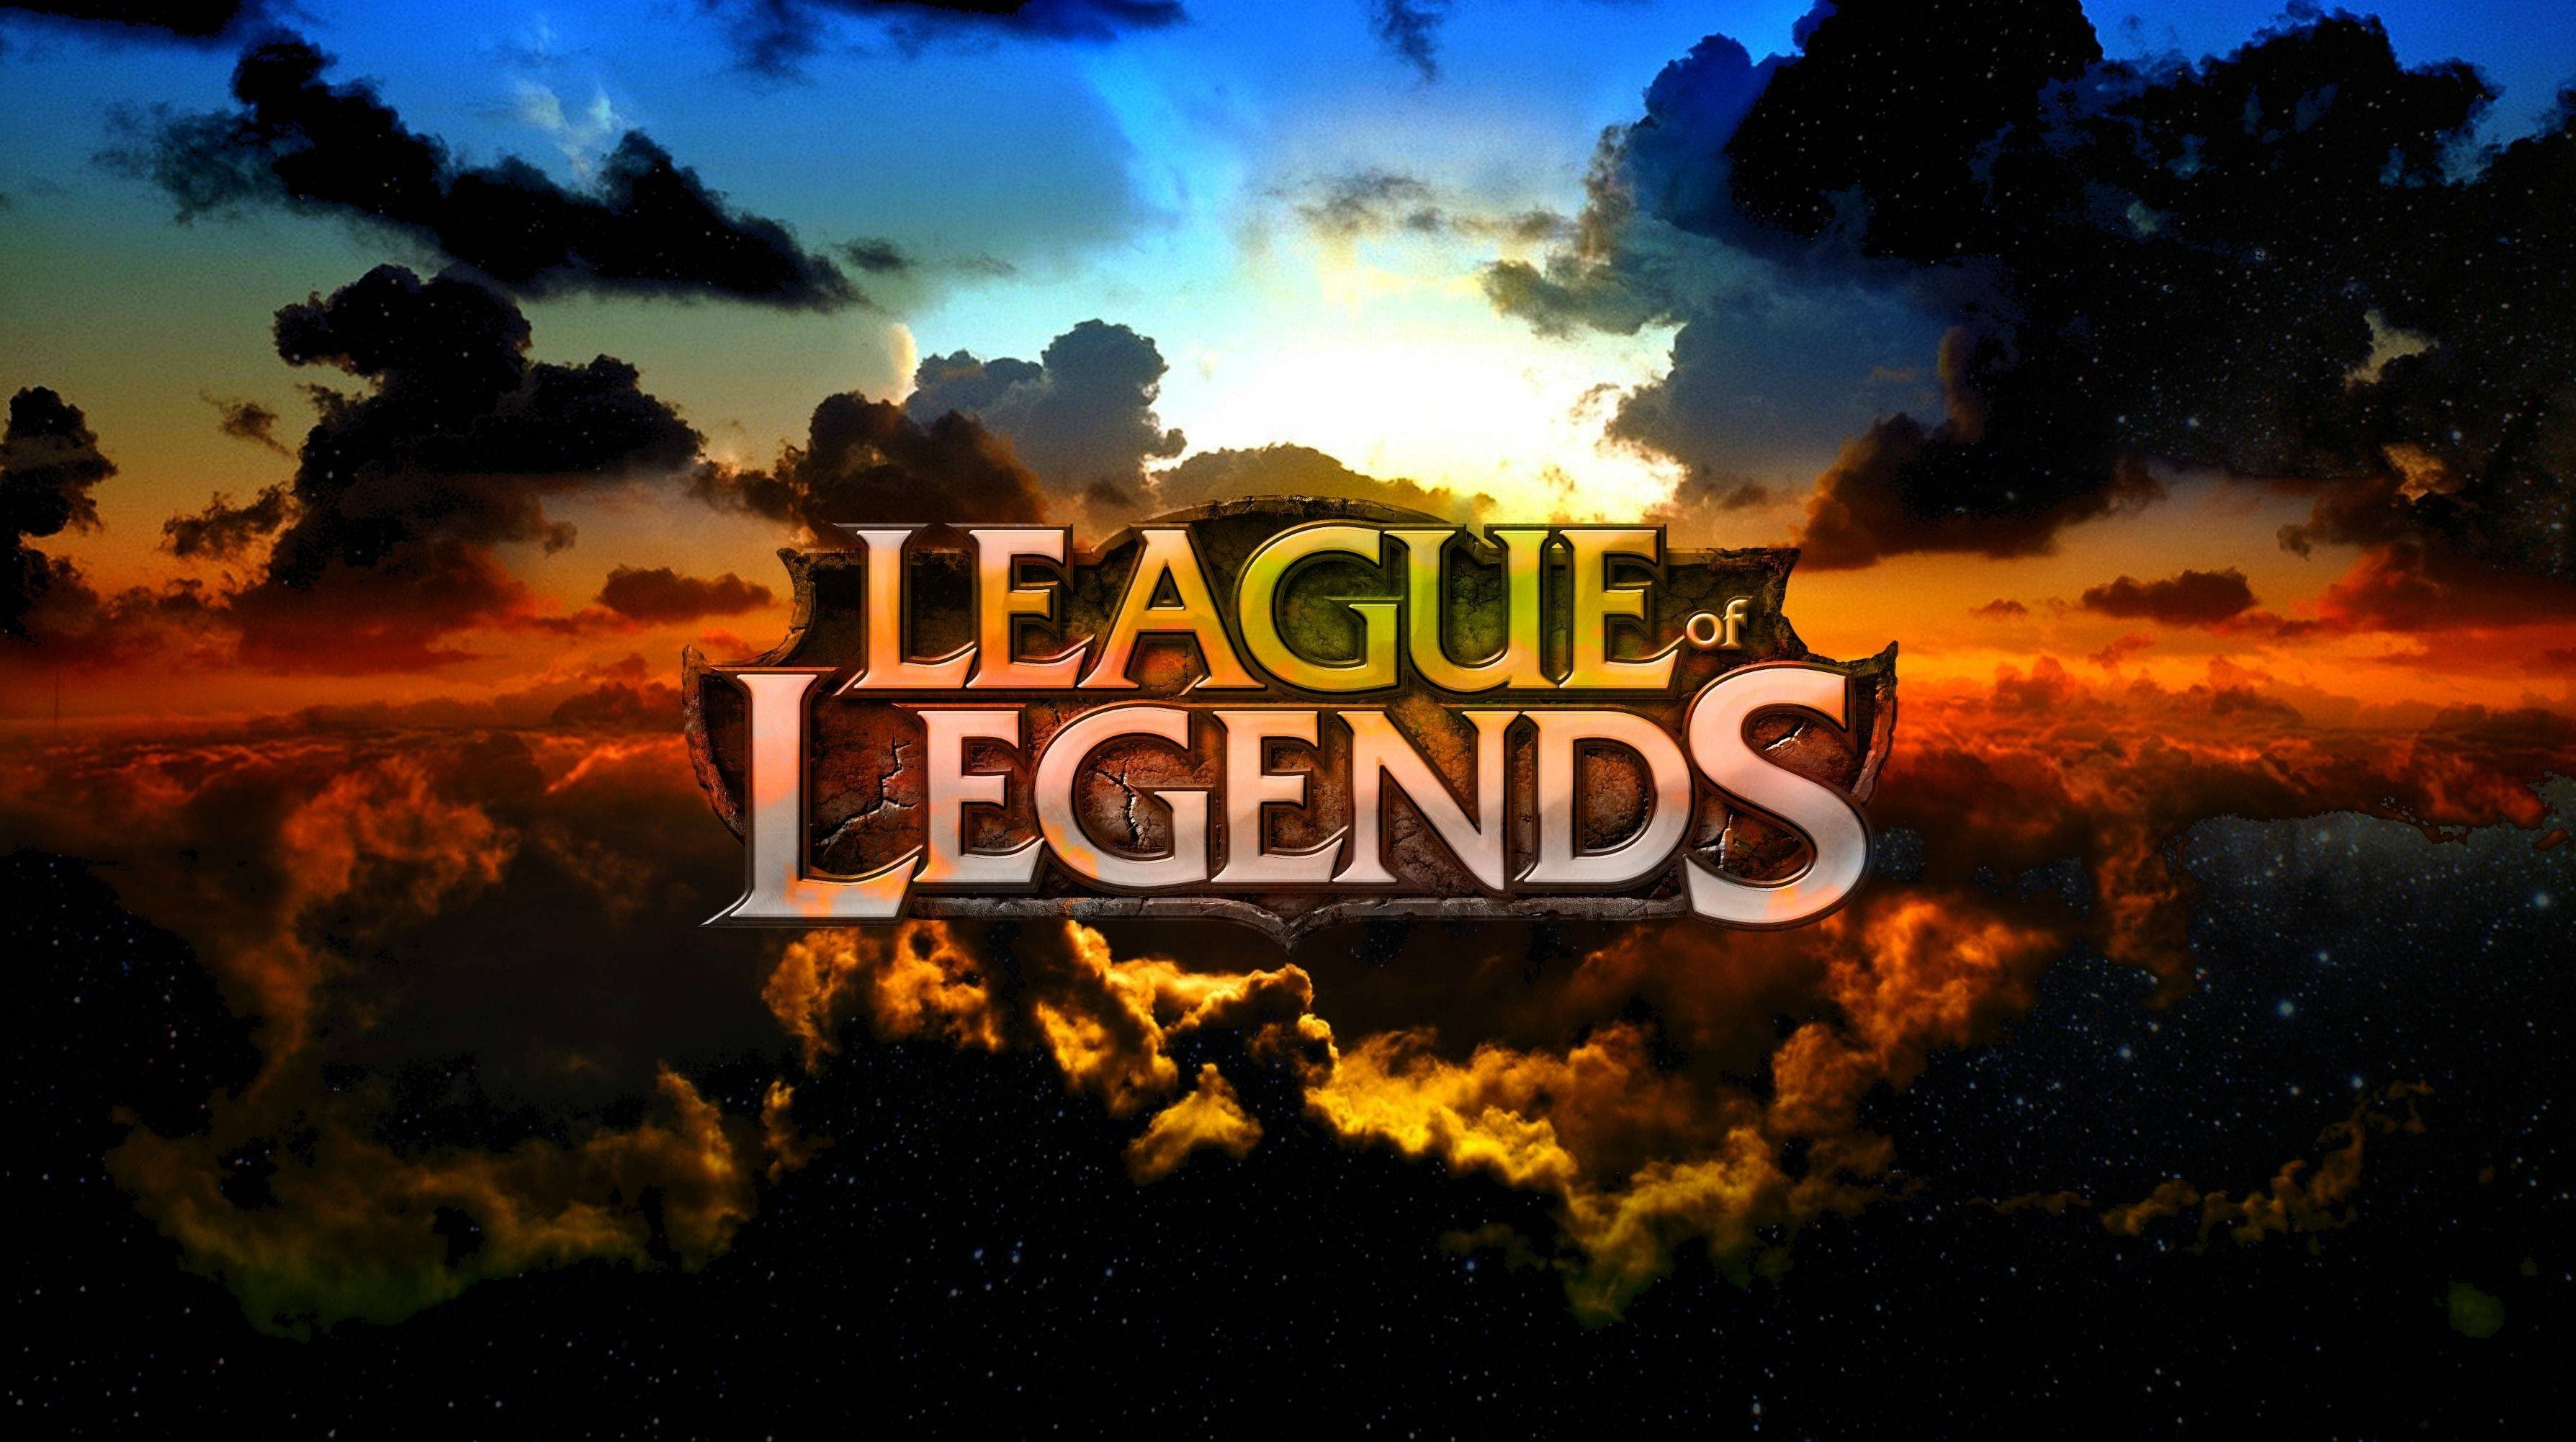 League of Legends tutorial: League of legends animated wallpapers